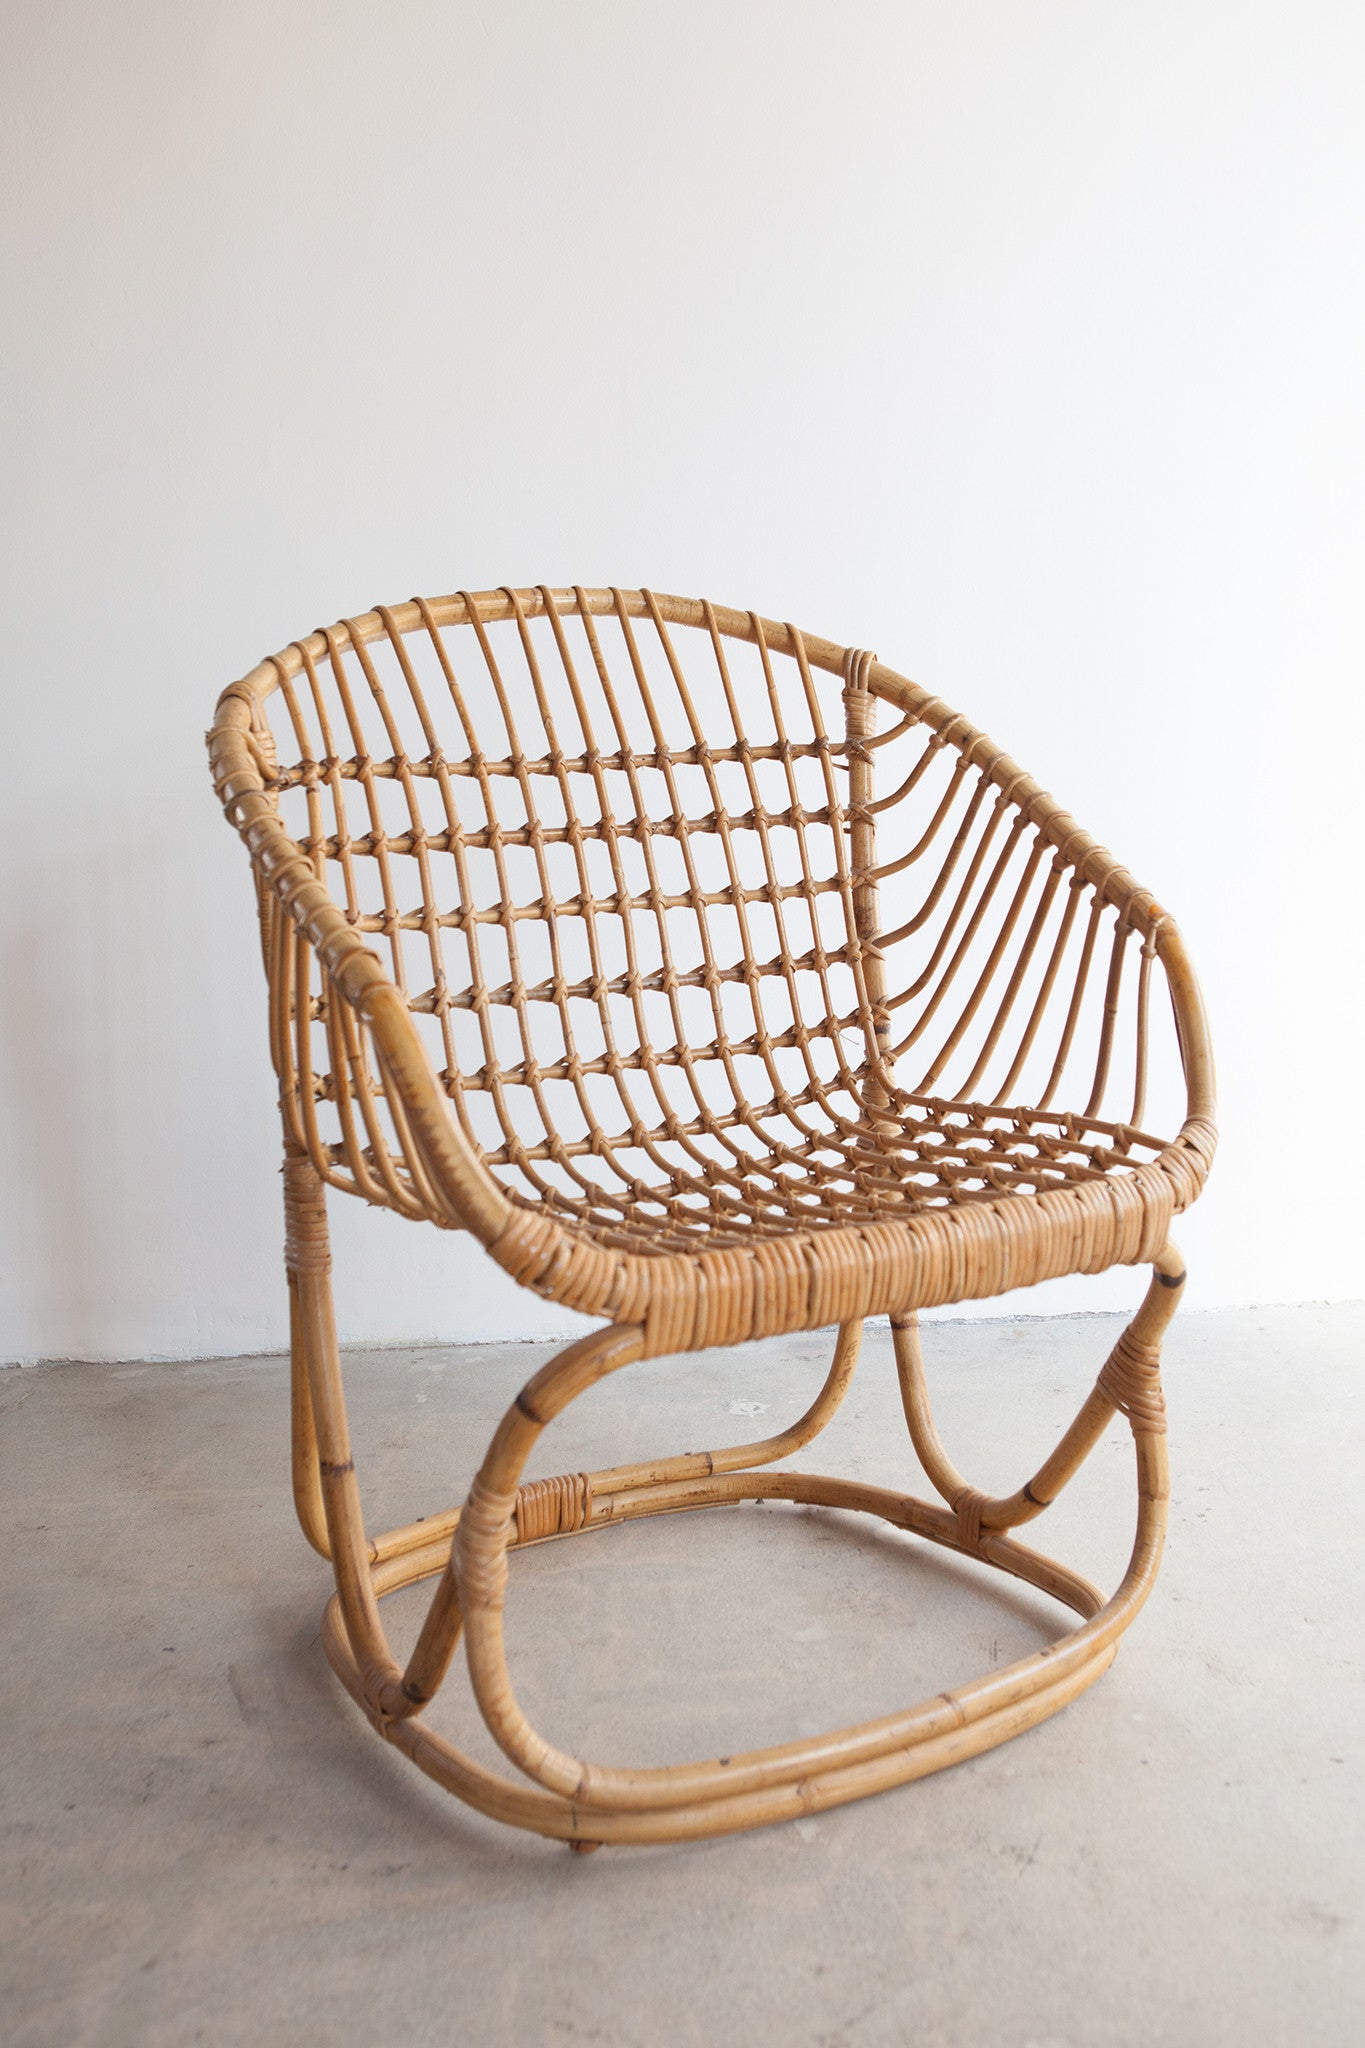 Vintage Rattan Bucket Chair SOLD OUT – MARIKOKO